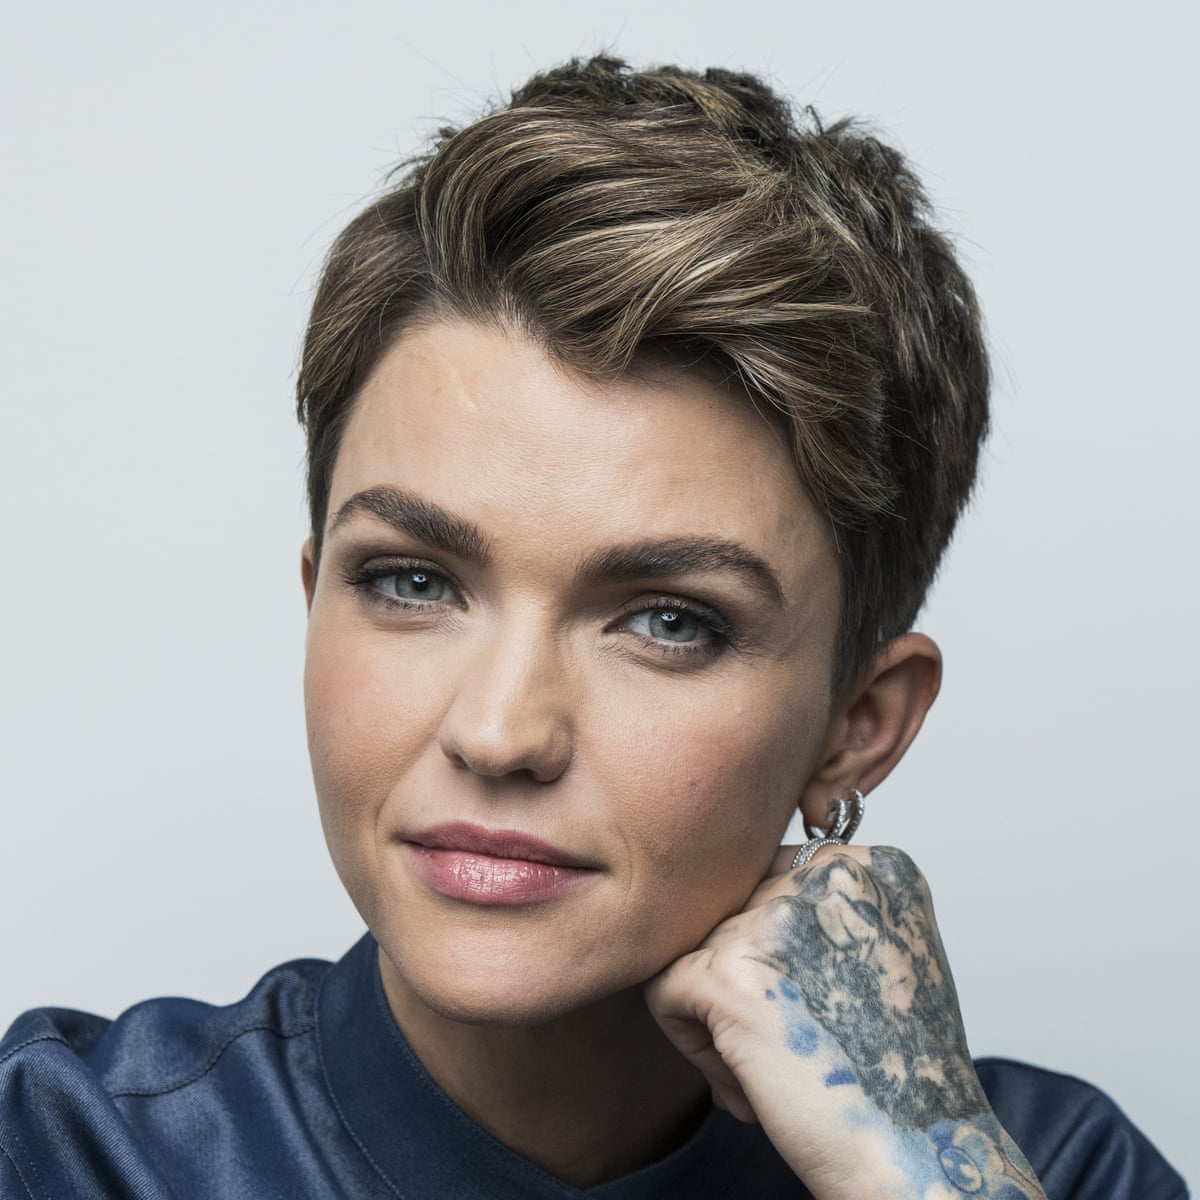 Pics Of Ruby Rose photo 20